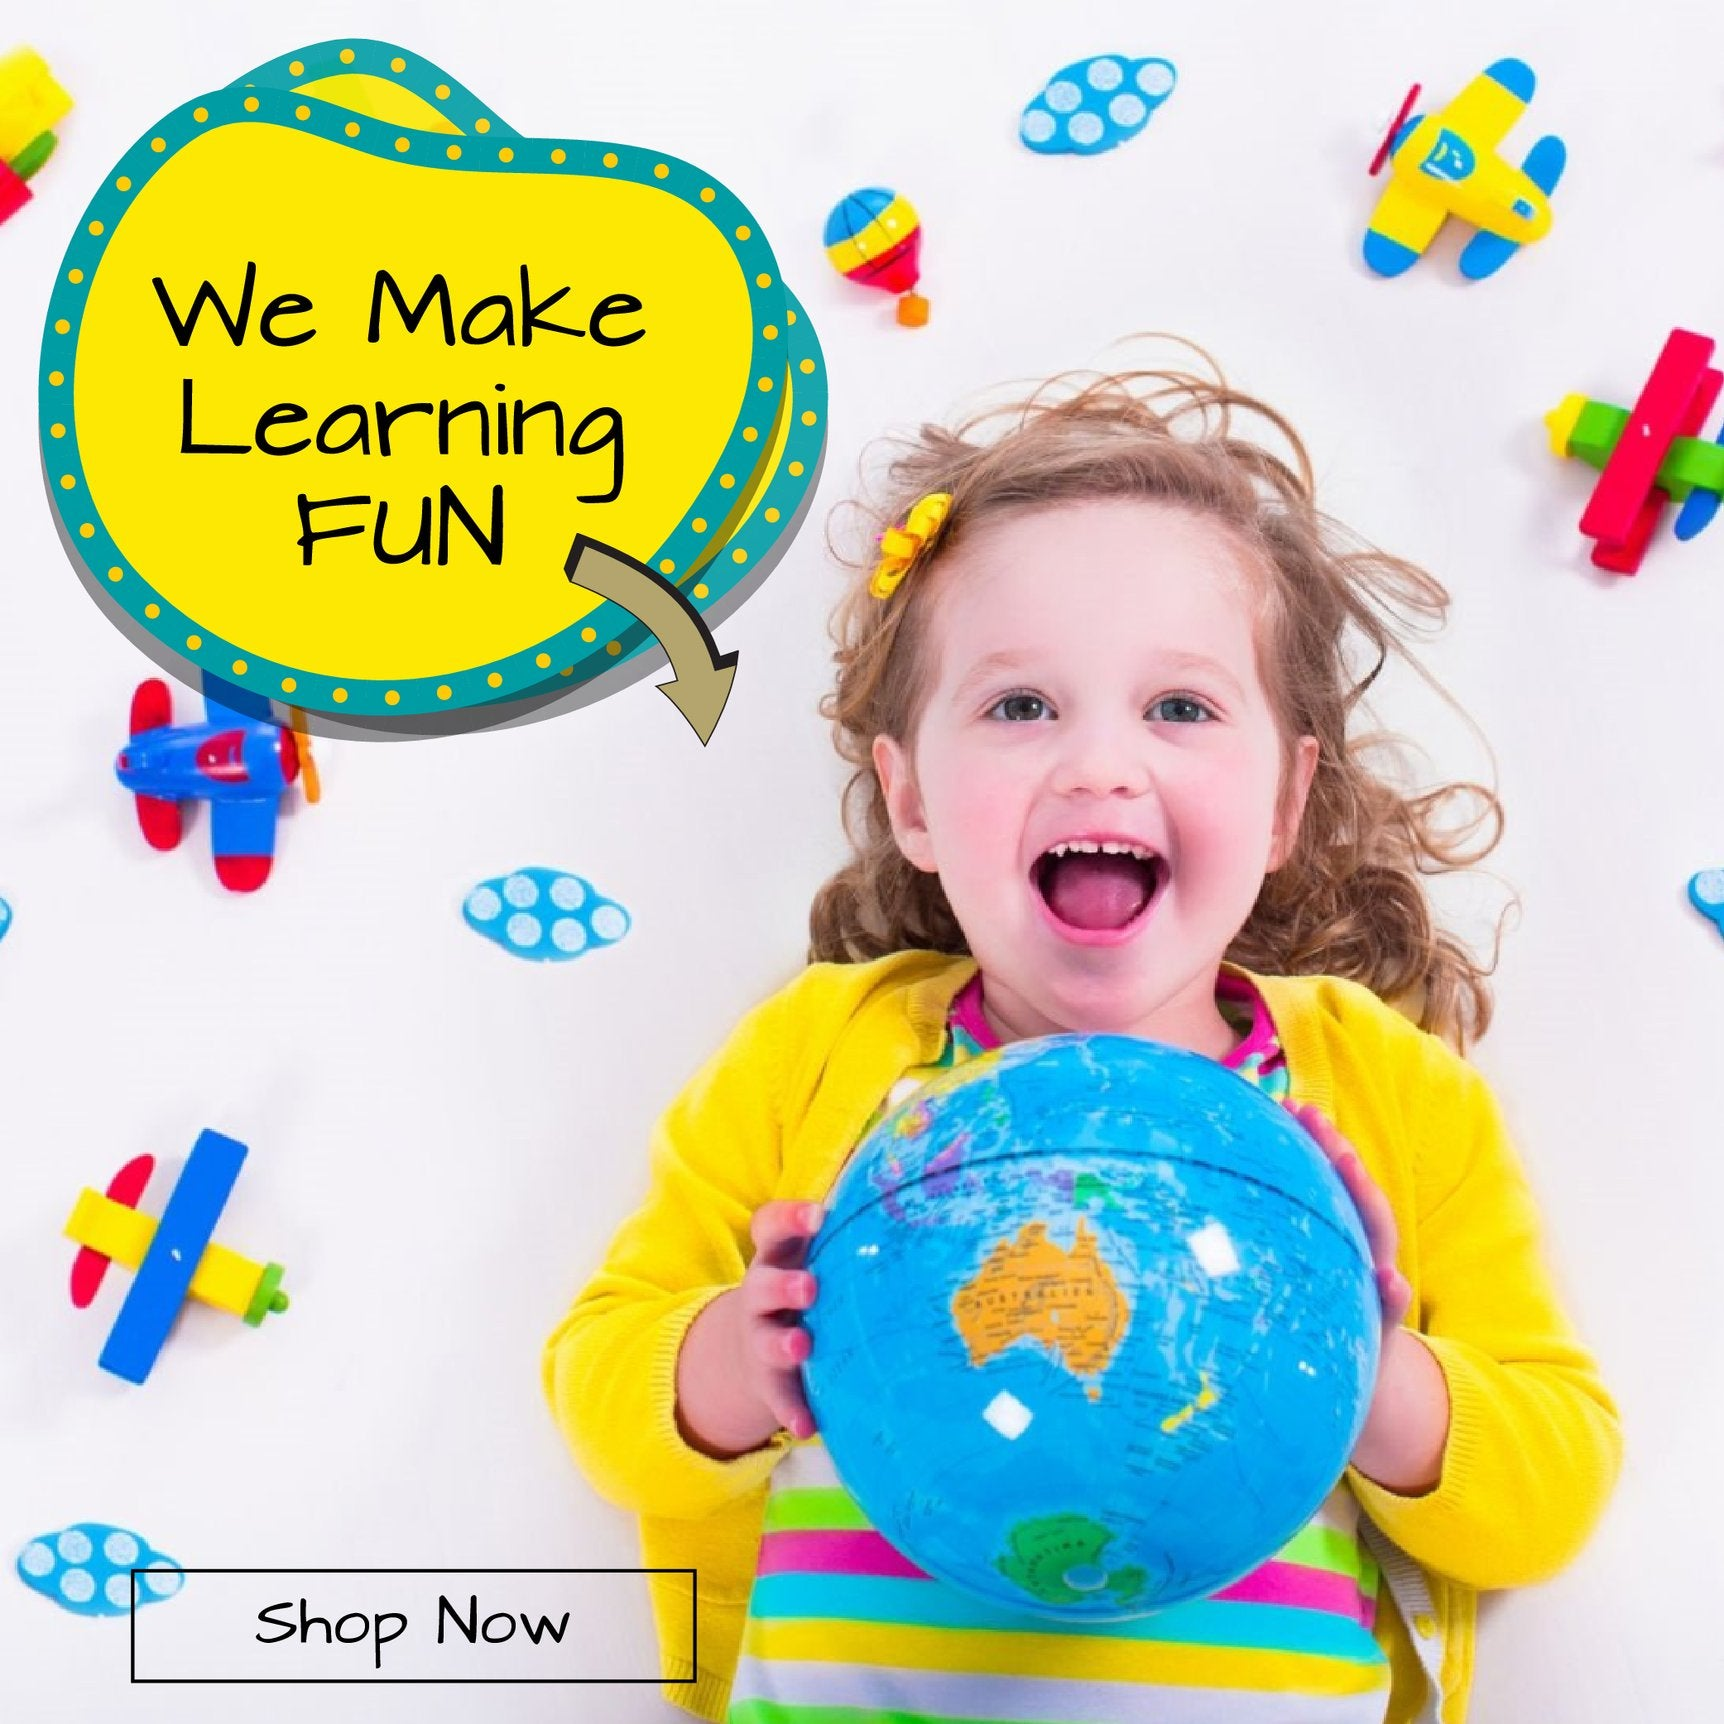 We Make Learning Fun image of appy little girl in yellow sweater holding globe